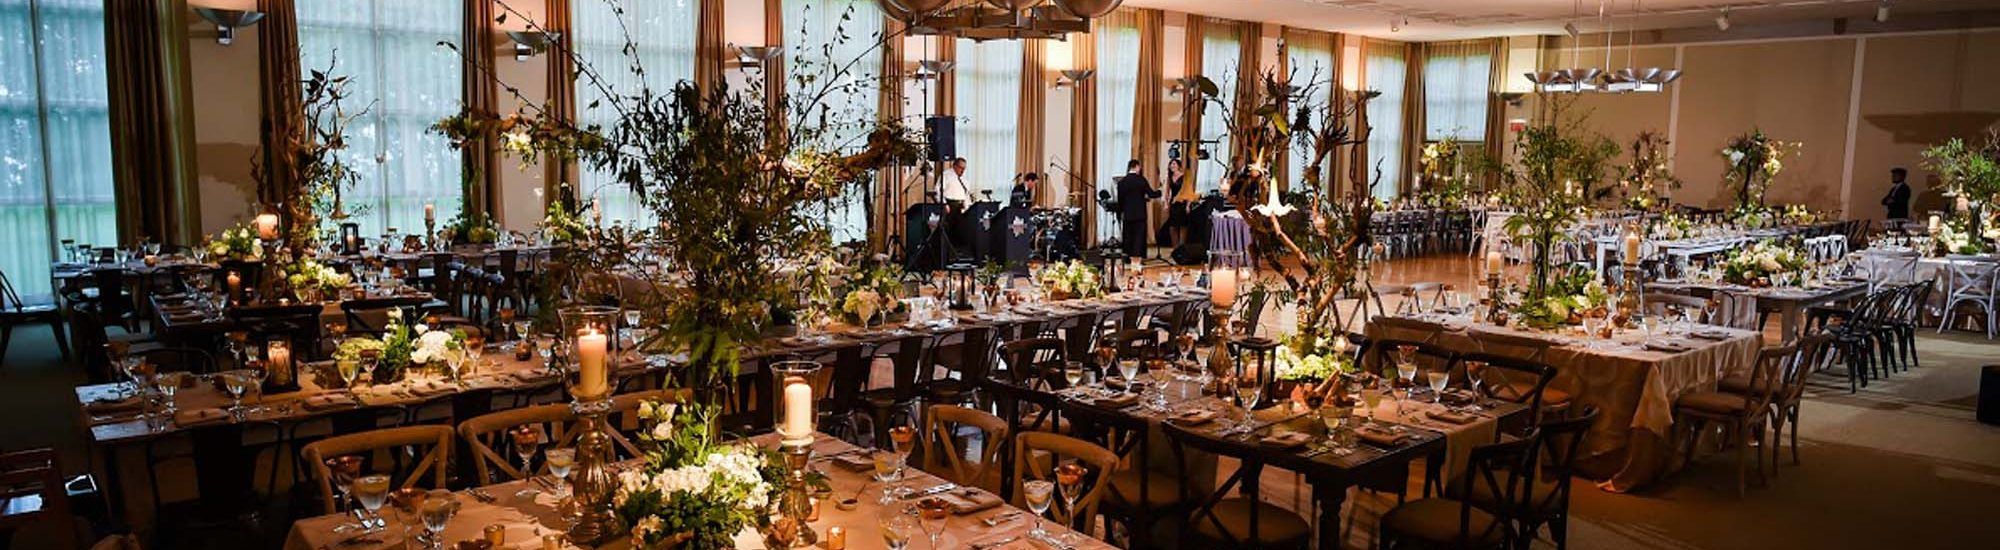 """<span class=""""slider_title"""">                                     REBECCA K. CROWN SOCIAL HALL                                </span>                                                                                                                                                                                       <span class=""""slider_description"""">The Rebecca K. Crown Social Hall is one of the most elegant reception halls on the North Shore and can be decorated and transformed for a truly personalized and exciting event.</span>"""